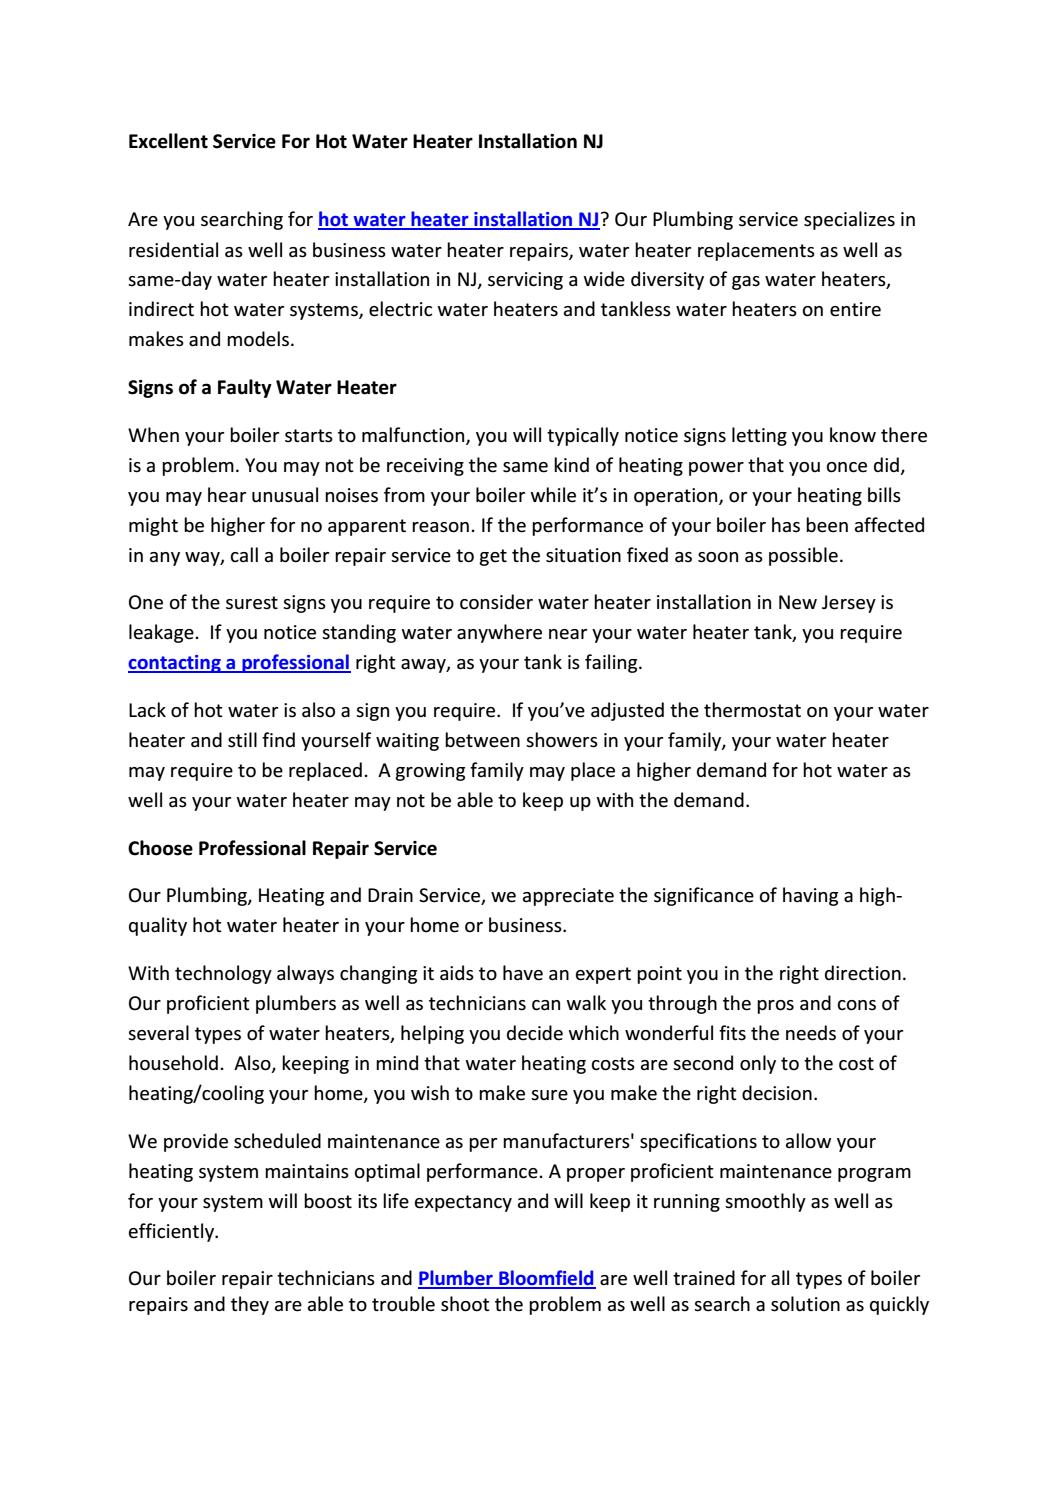 Indirect Hot Water Heater Problems : indirect, water, heater, problems, Excellent, Service, Water, Heater, Installation, T-Mont, Plumbing, Heating, Issuu